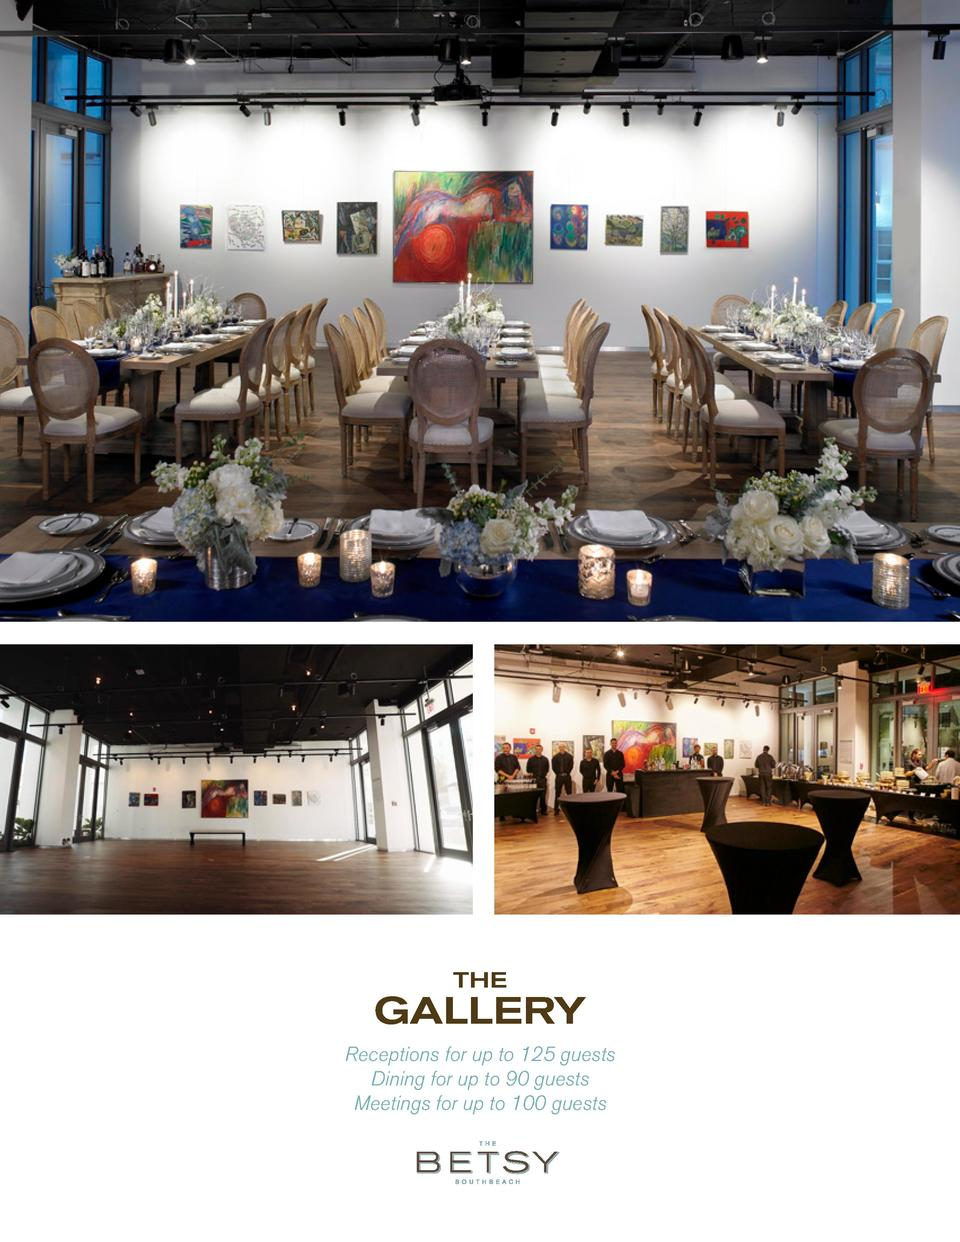 THE  GALLERY Receptions for up to 125 guests Dining for up to 90 guests Meetings for up to 100 guests